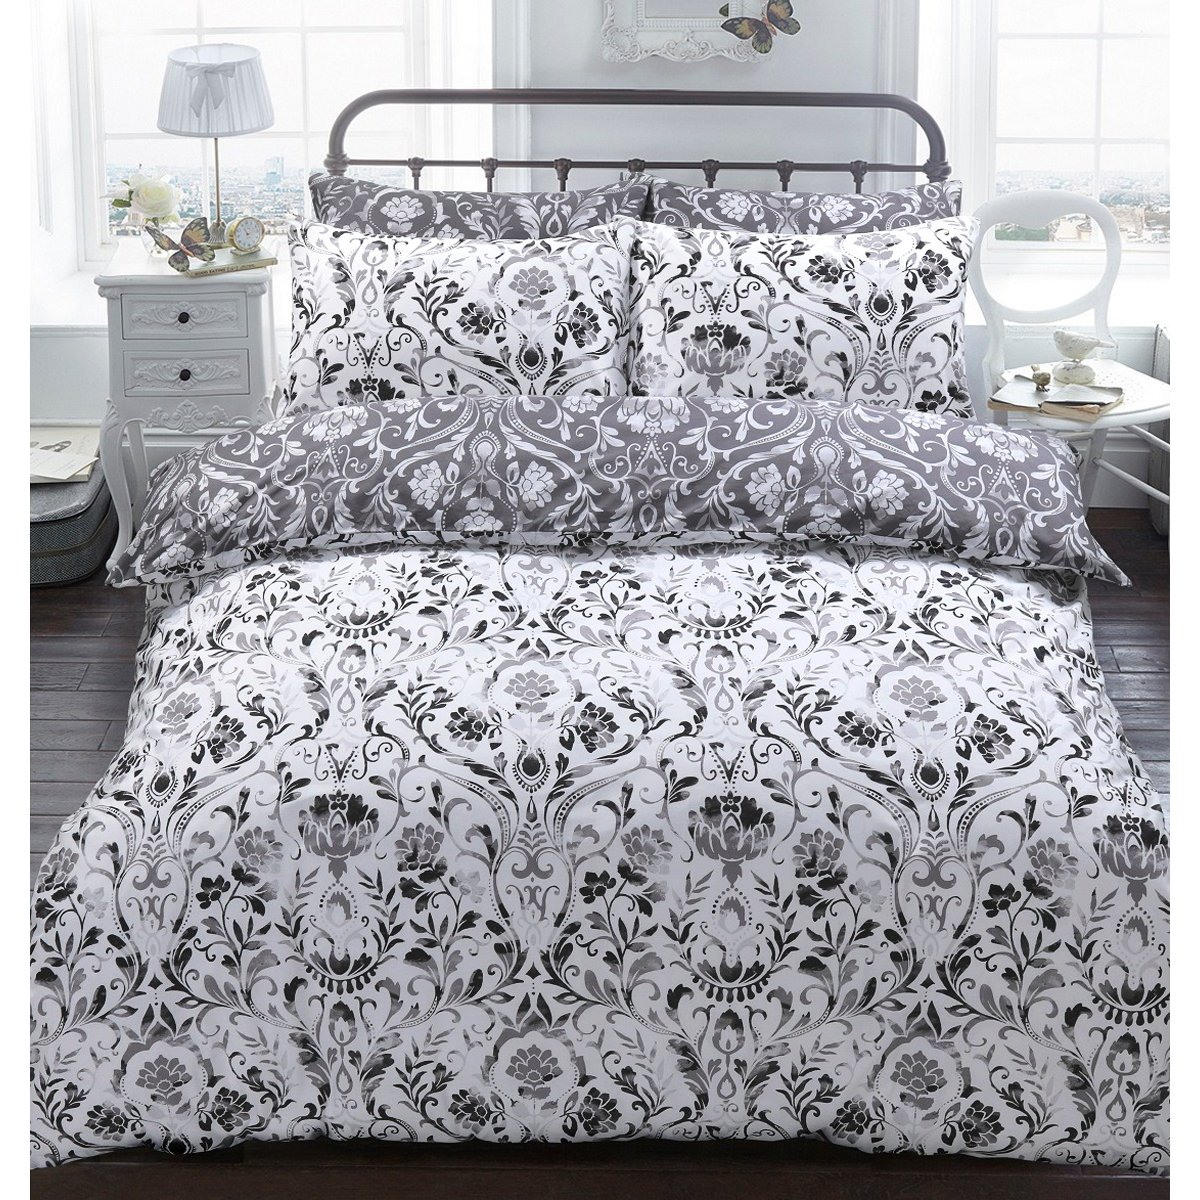 Painted Damask Monochrome Bedding - Reversible Duvet Cover and Pillowcase Set